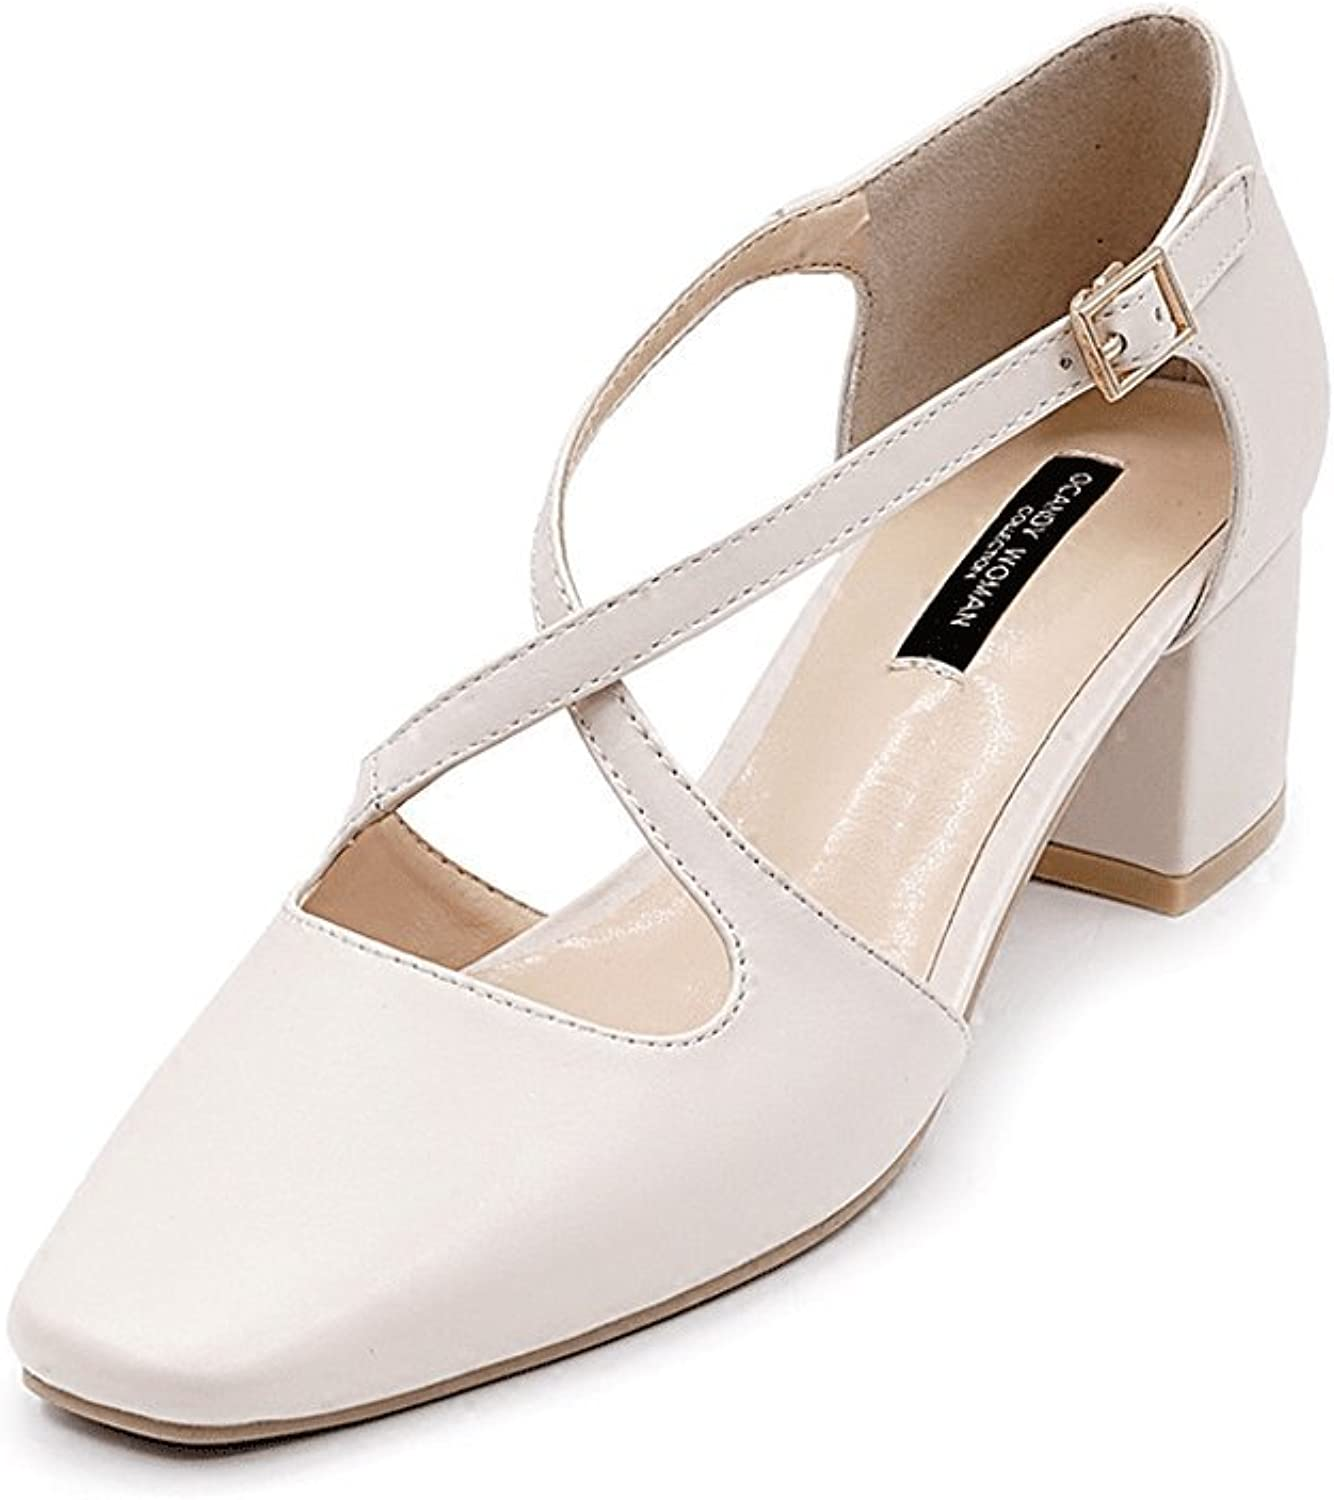 Rough With High Heels Summer Square Head Ladies shoes Roman Sandals Elegant Baotou shoes ( color   Beige , Size   39 )